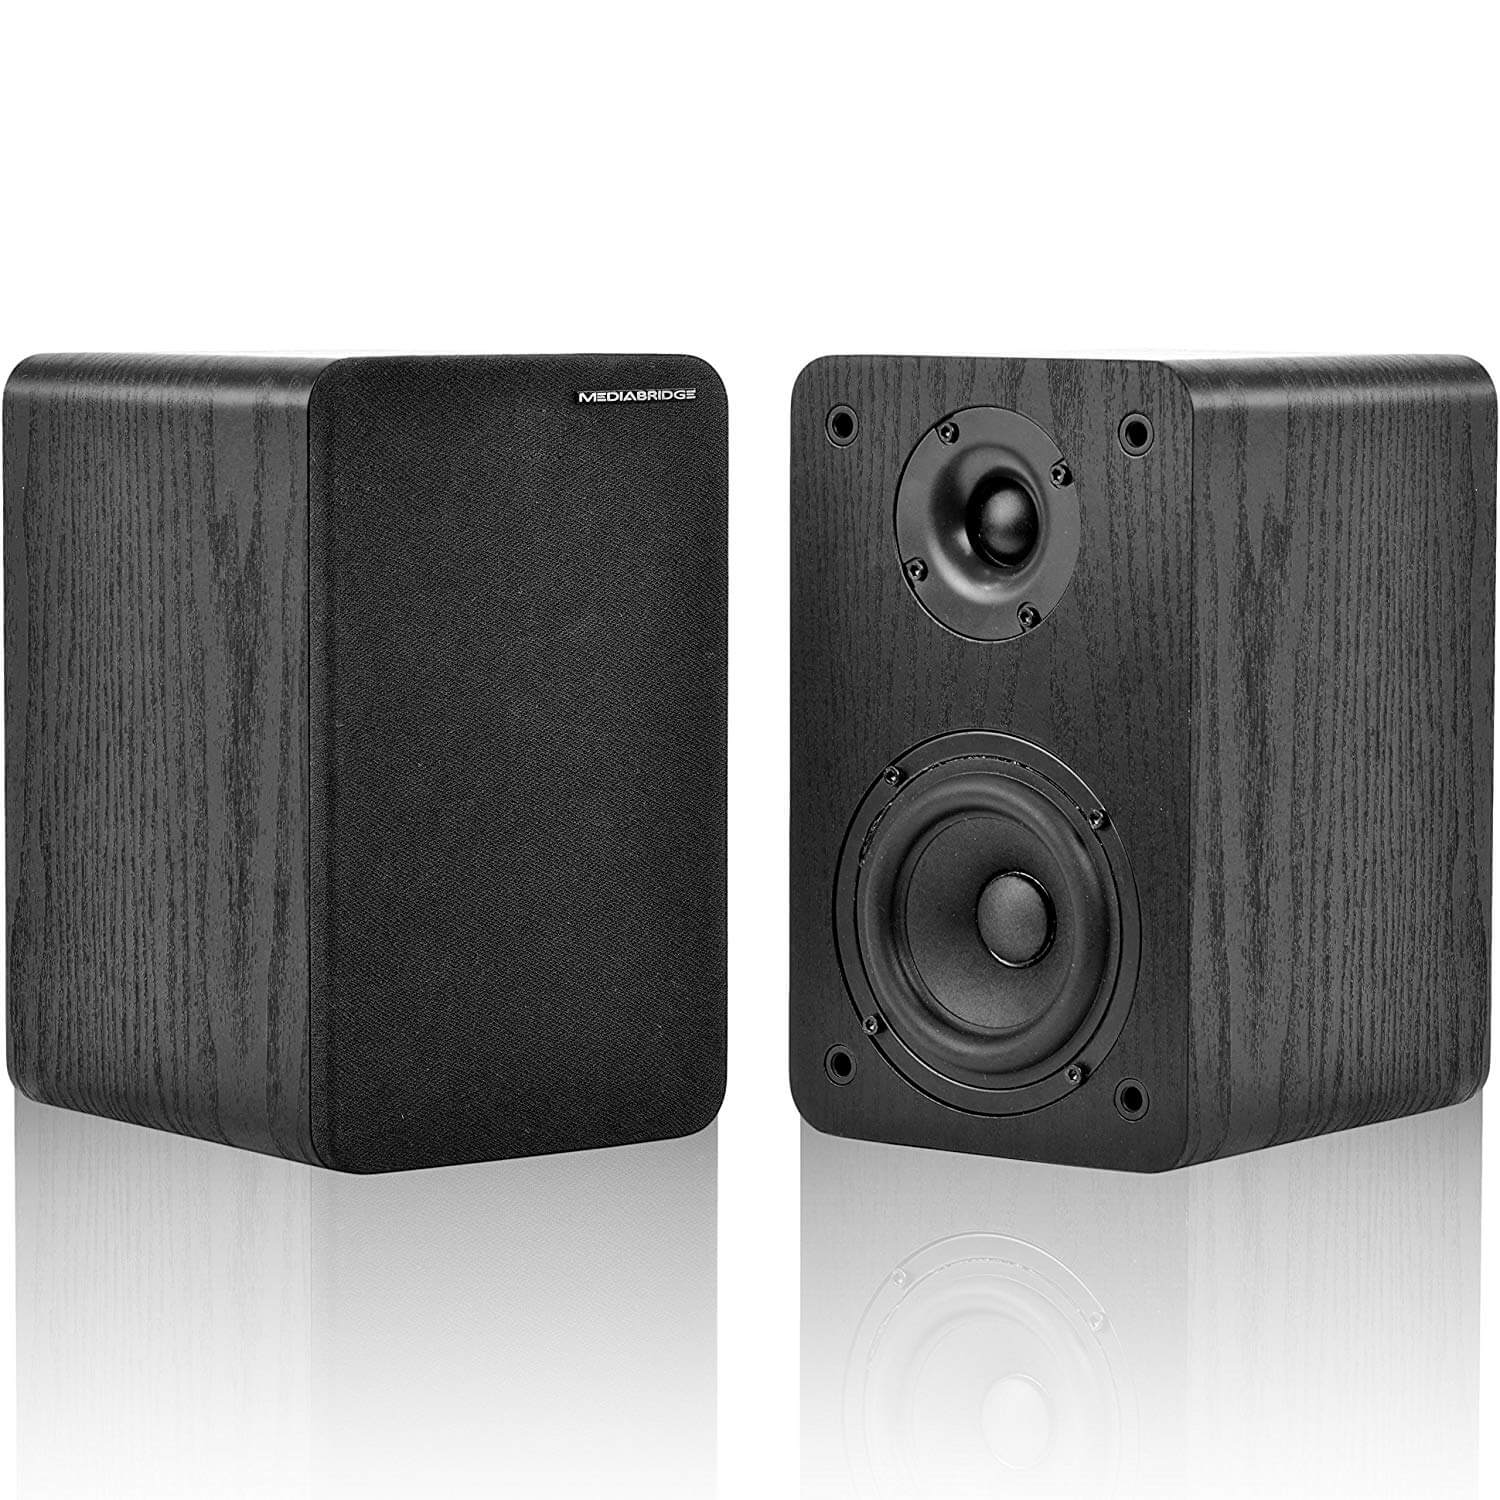 Mediabridge Bookshelf Speakers